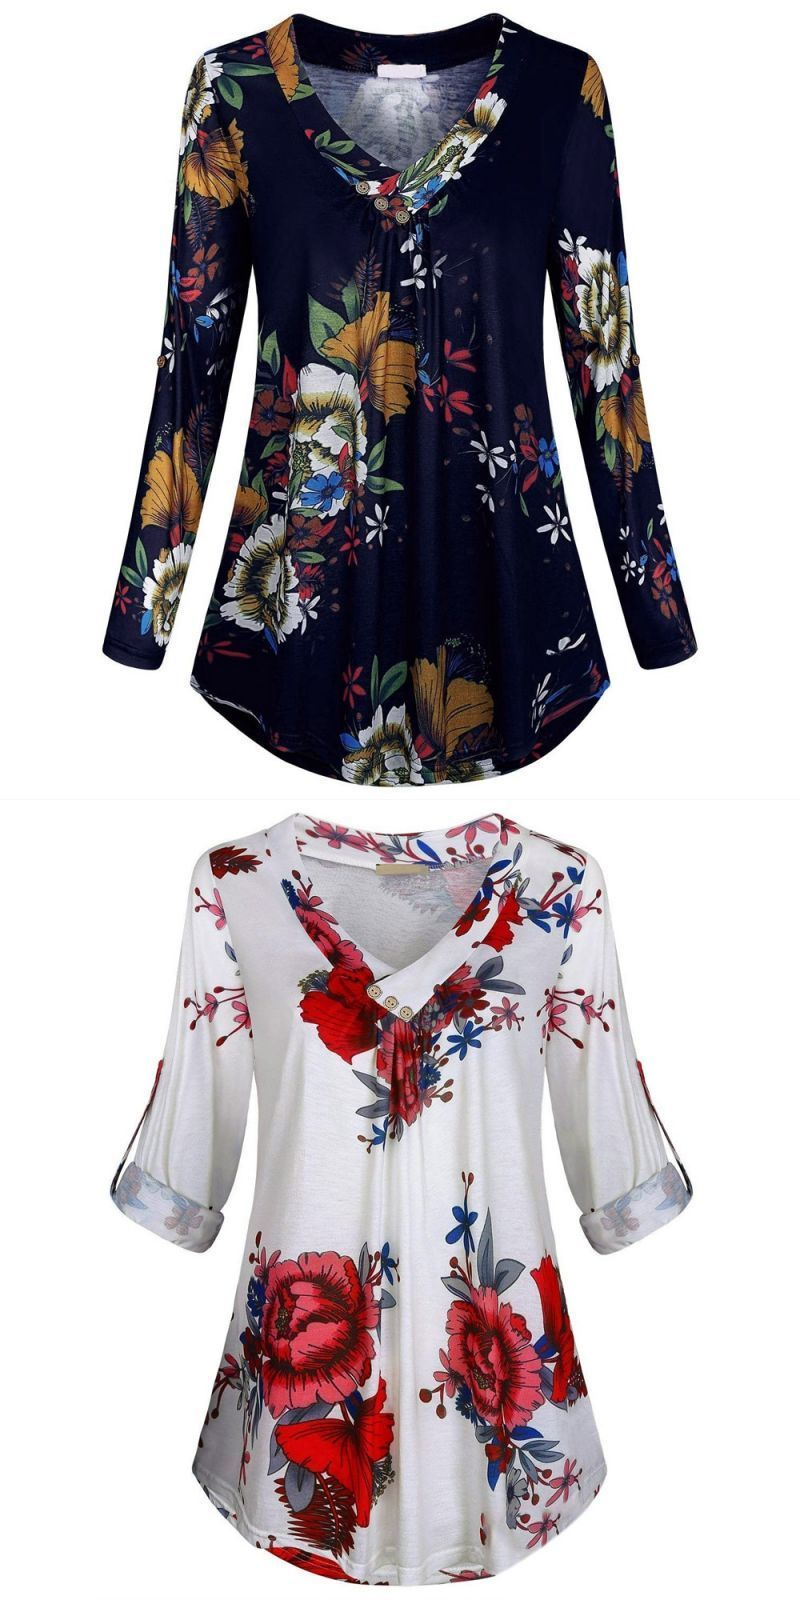 c73609e6706 Plus size 5xl womens tops and blouses vintage floral print long sleeve  blouse 2018 women clothes ladies tops fashion clothing  polyester  regular   casual ...